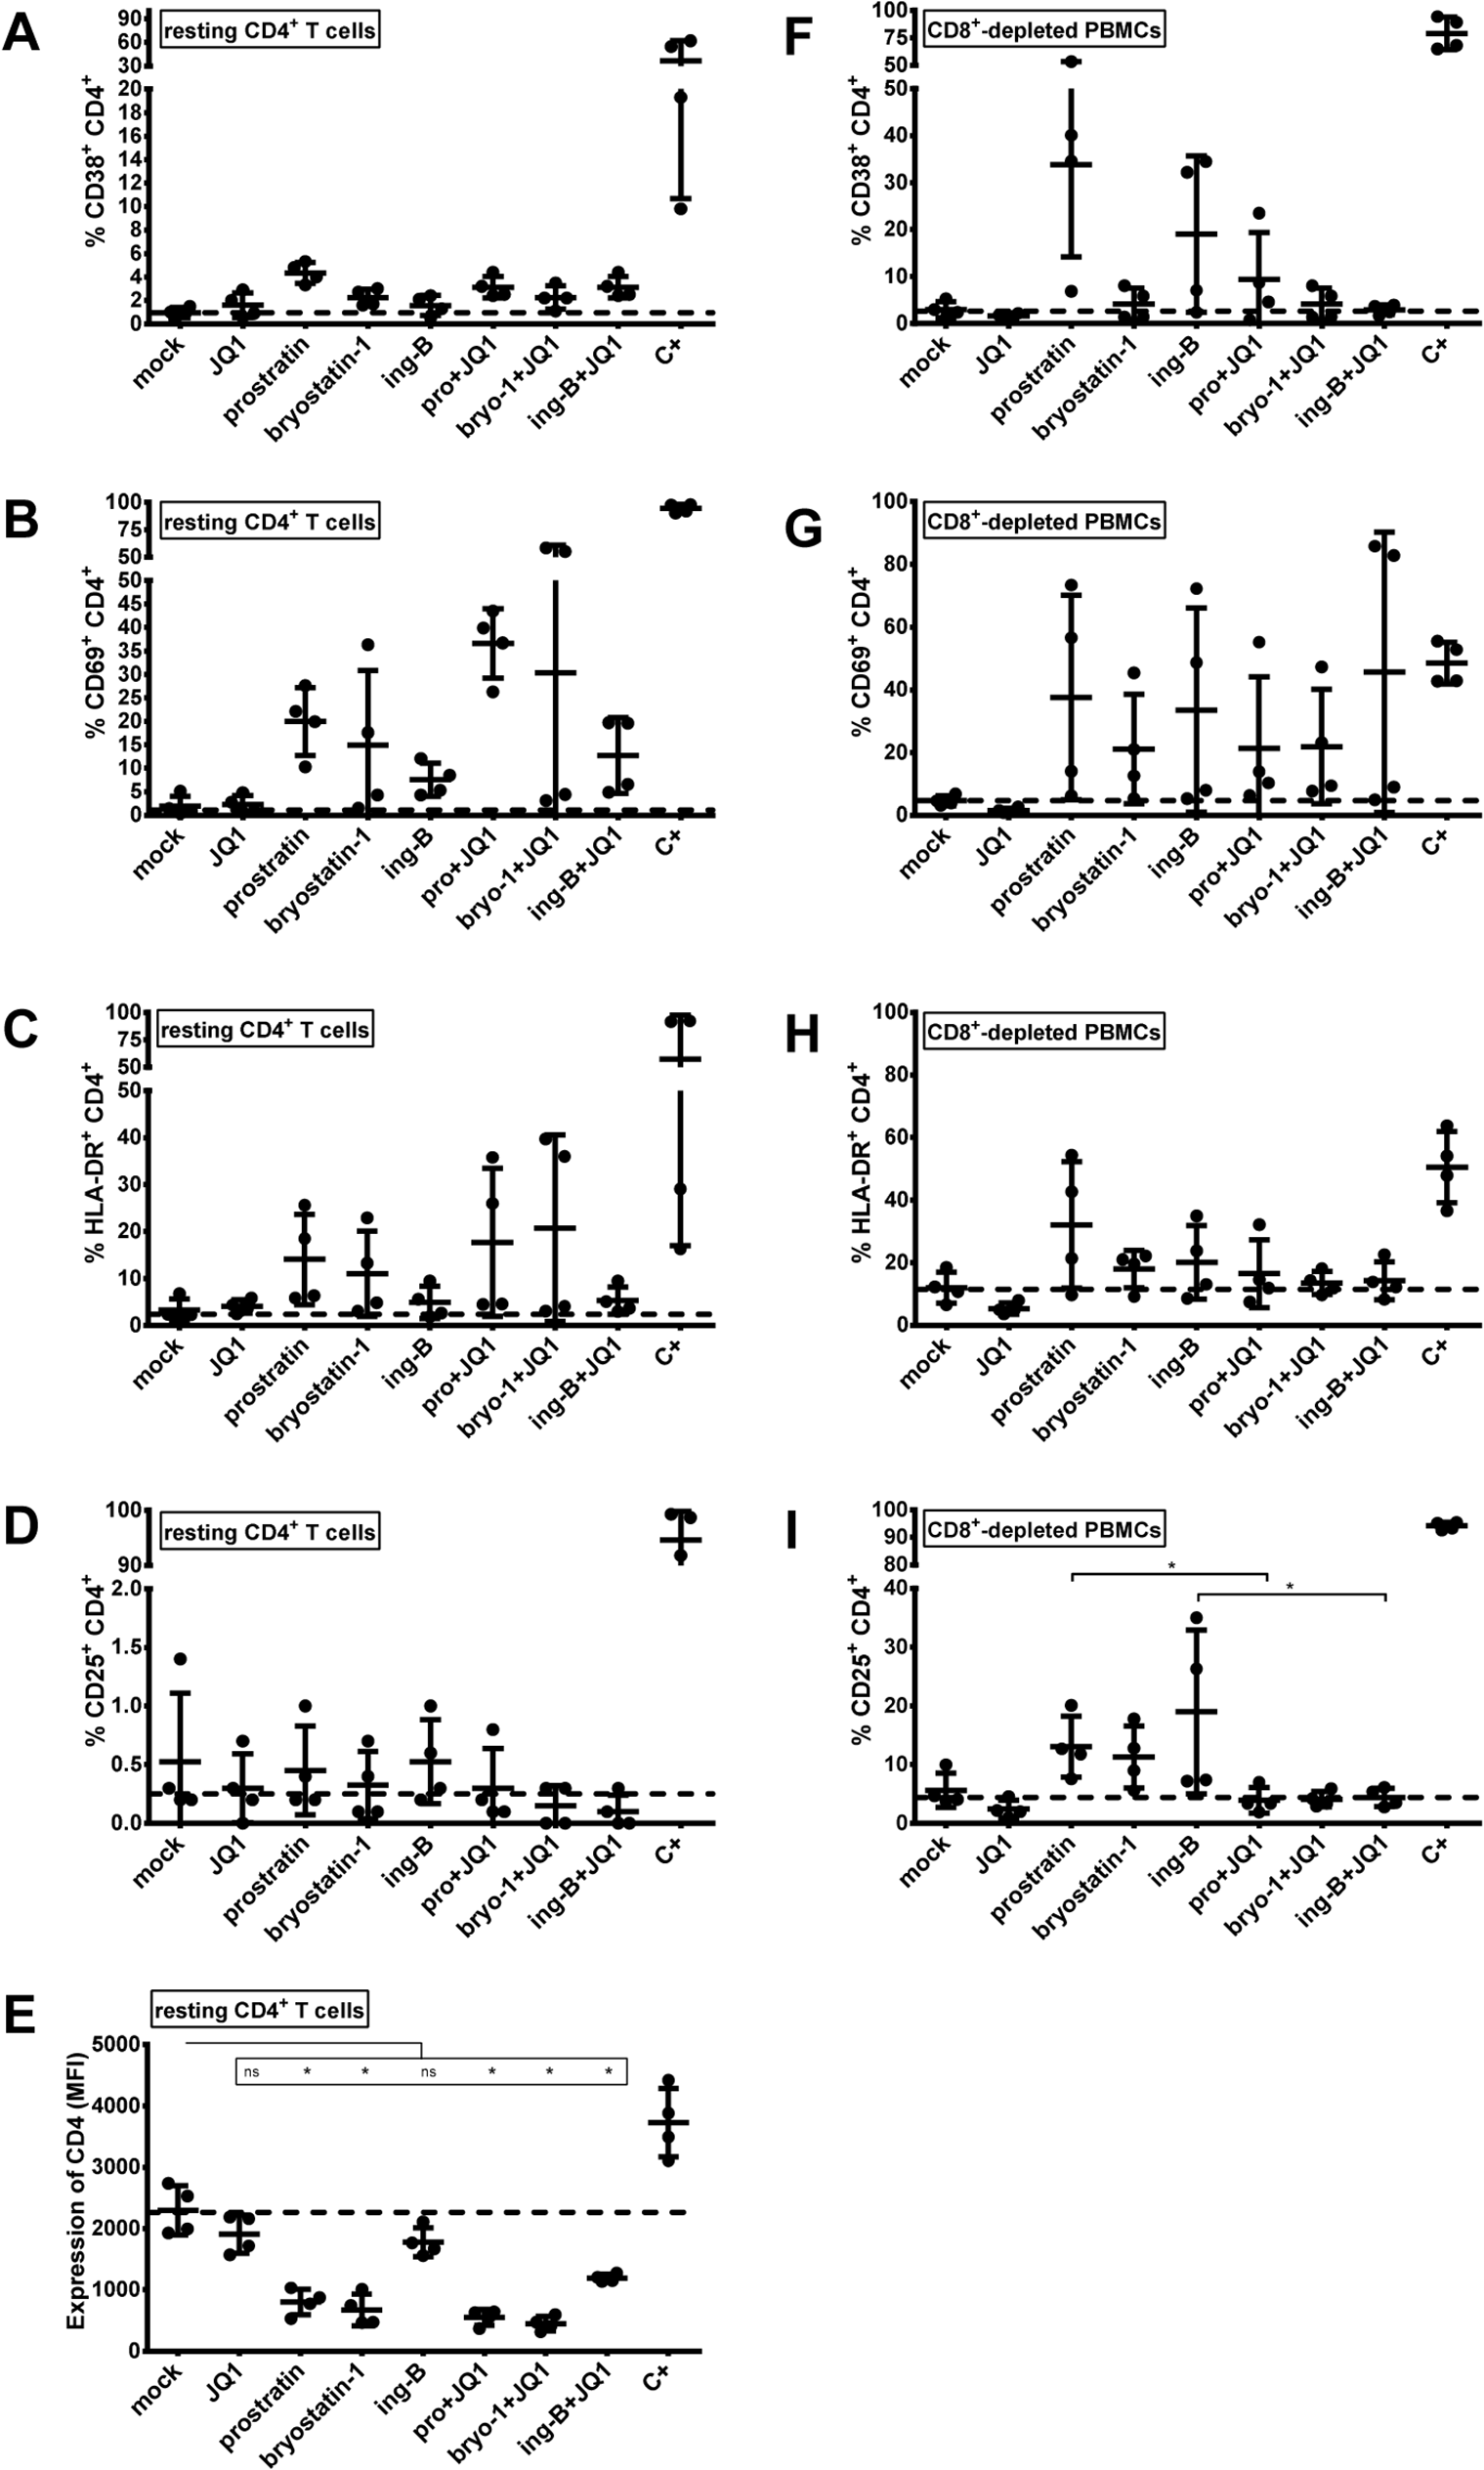 Expression of cell surface activation markers following PKC agonists and JQ1 treatments.